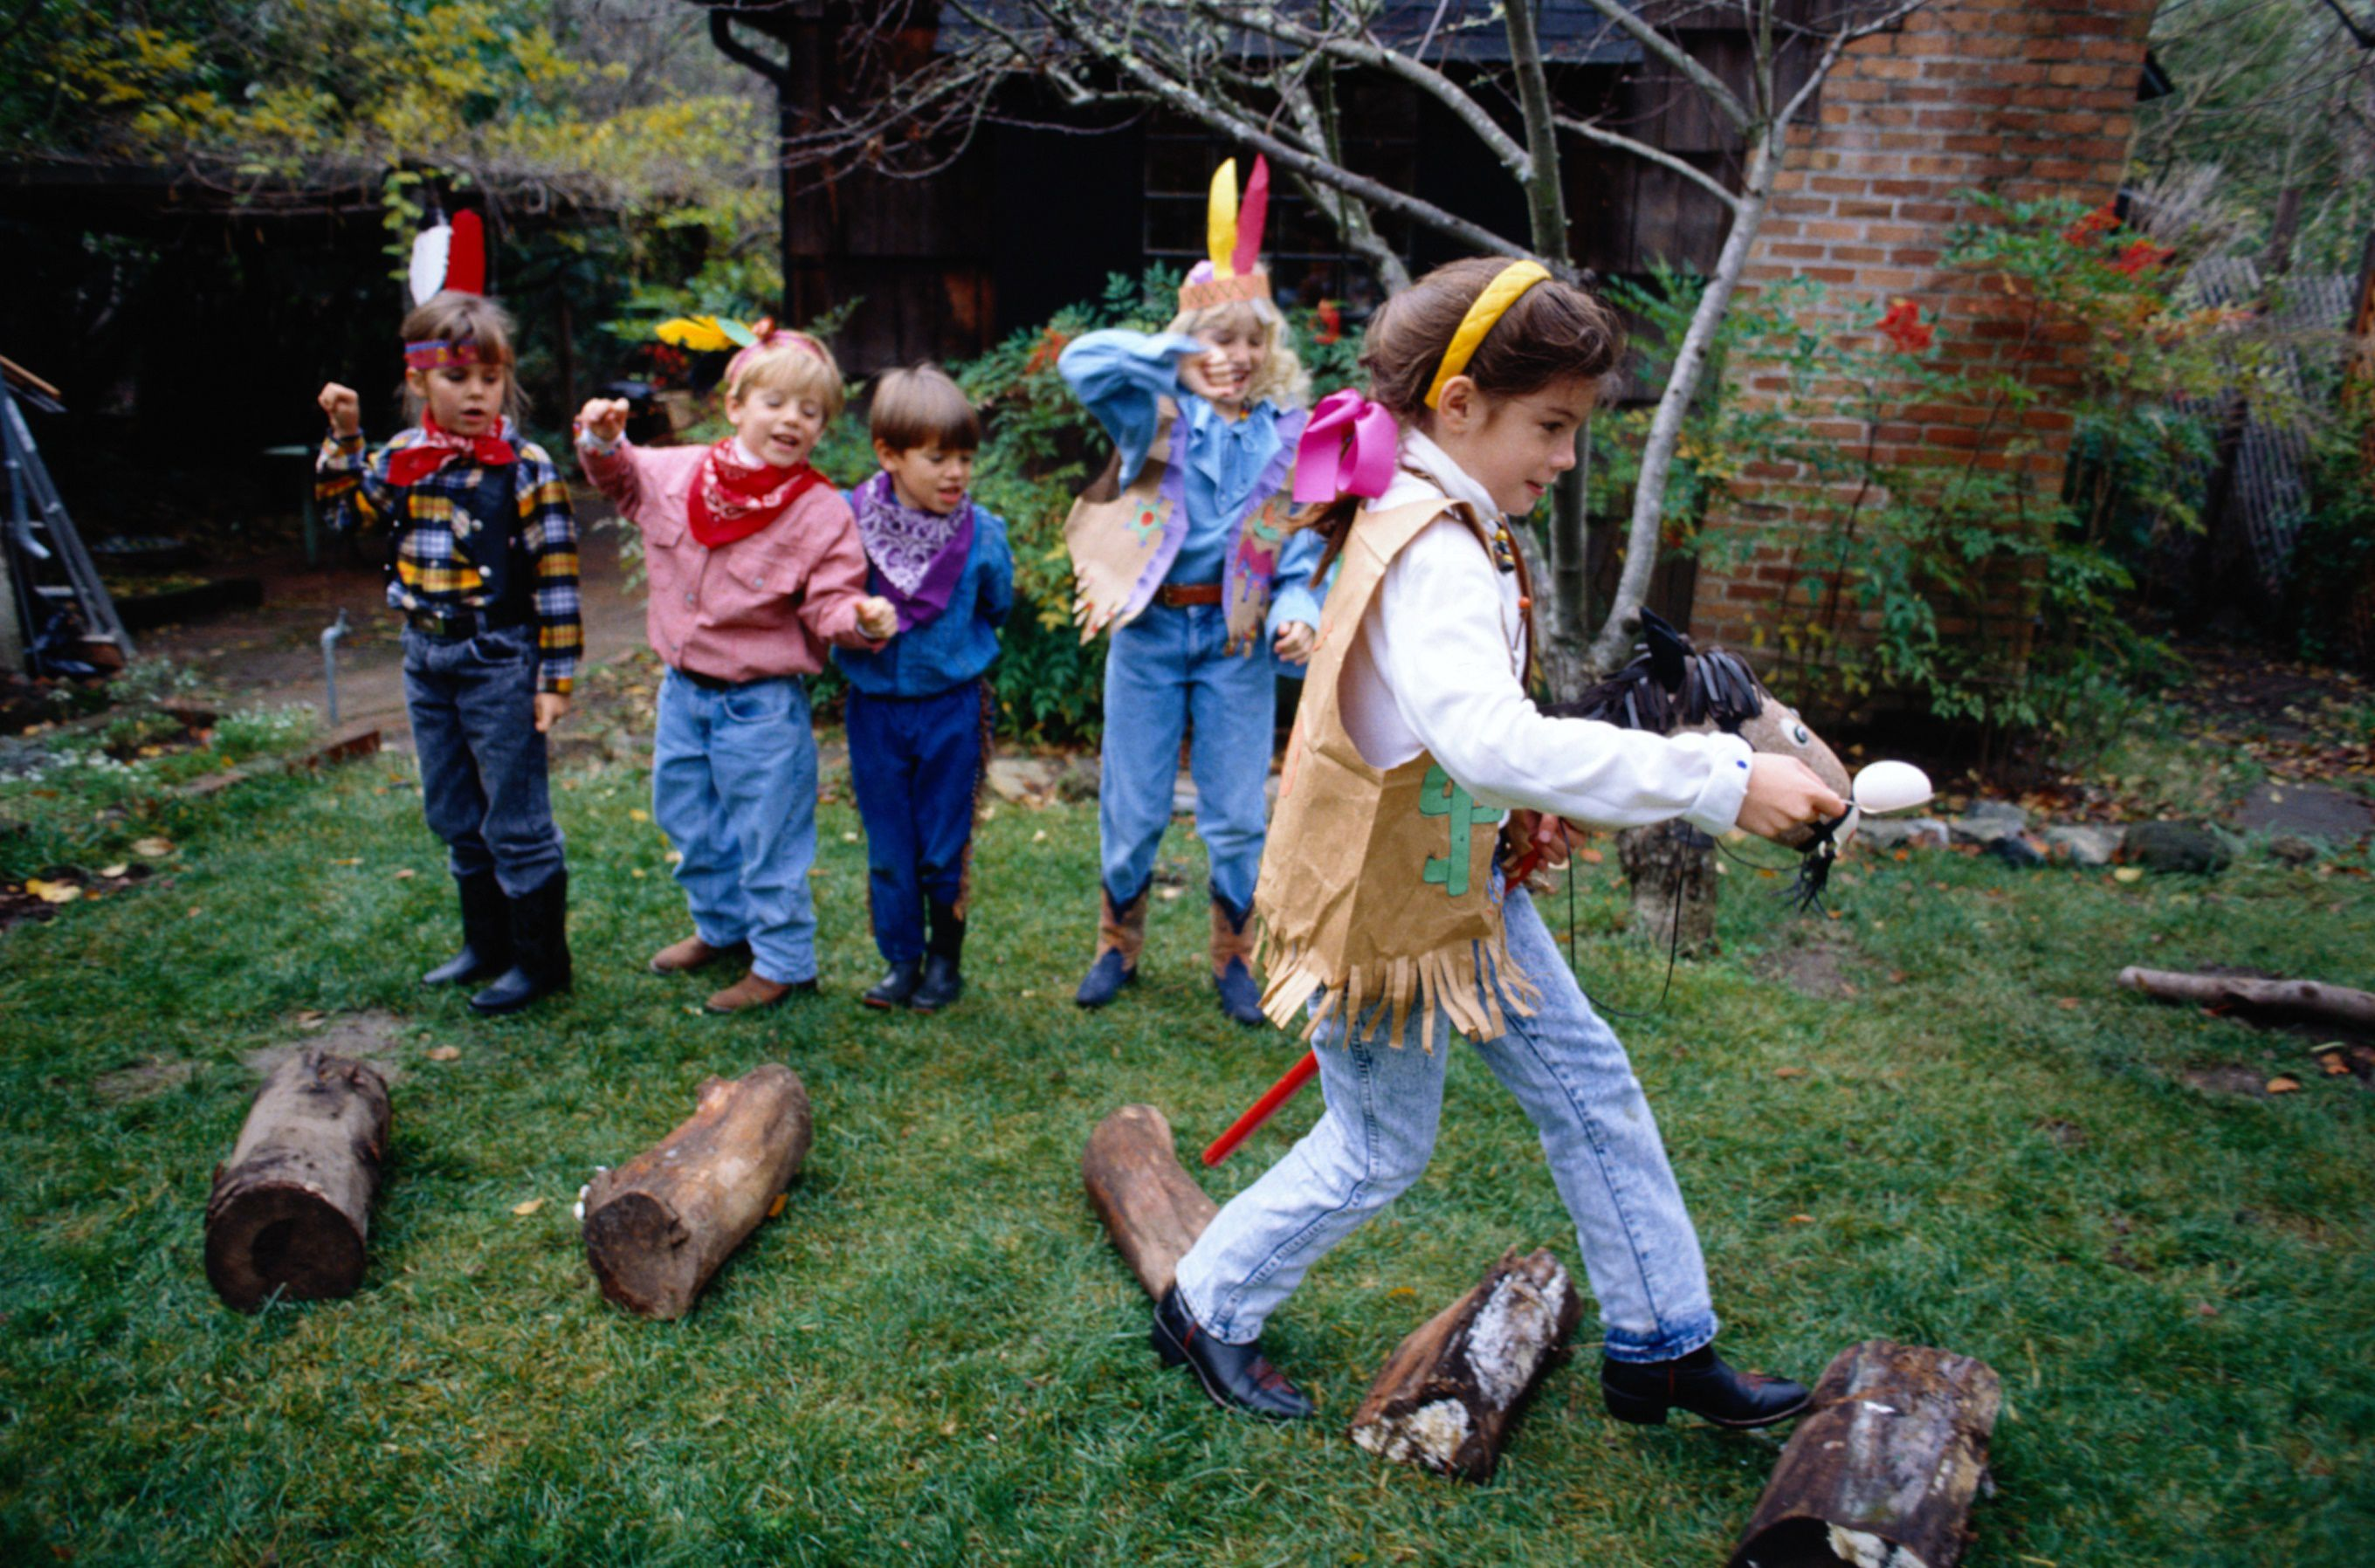 outdoor party games for kids - dress up relay race